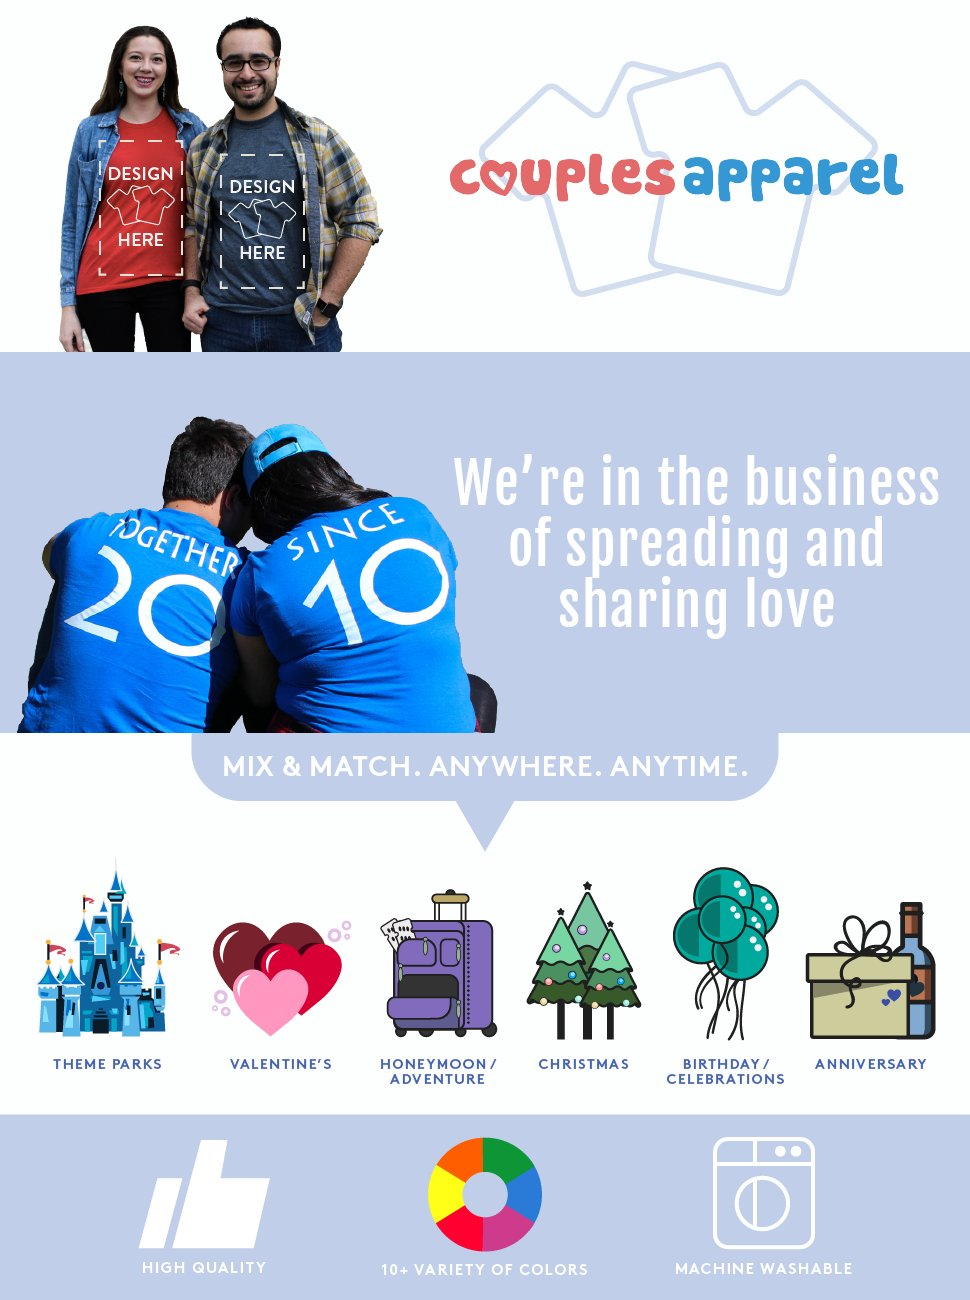 Couples Apparels custom matching shirts take relationships to the next level